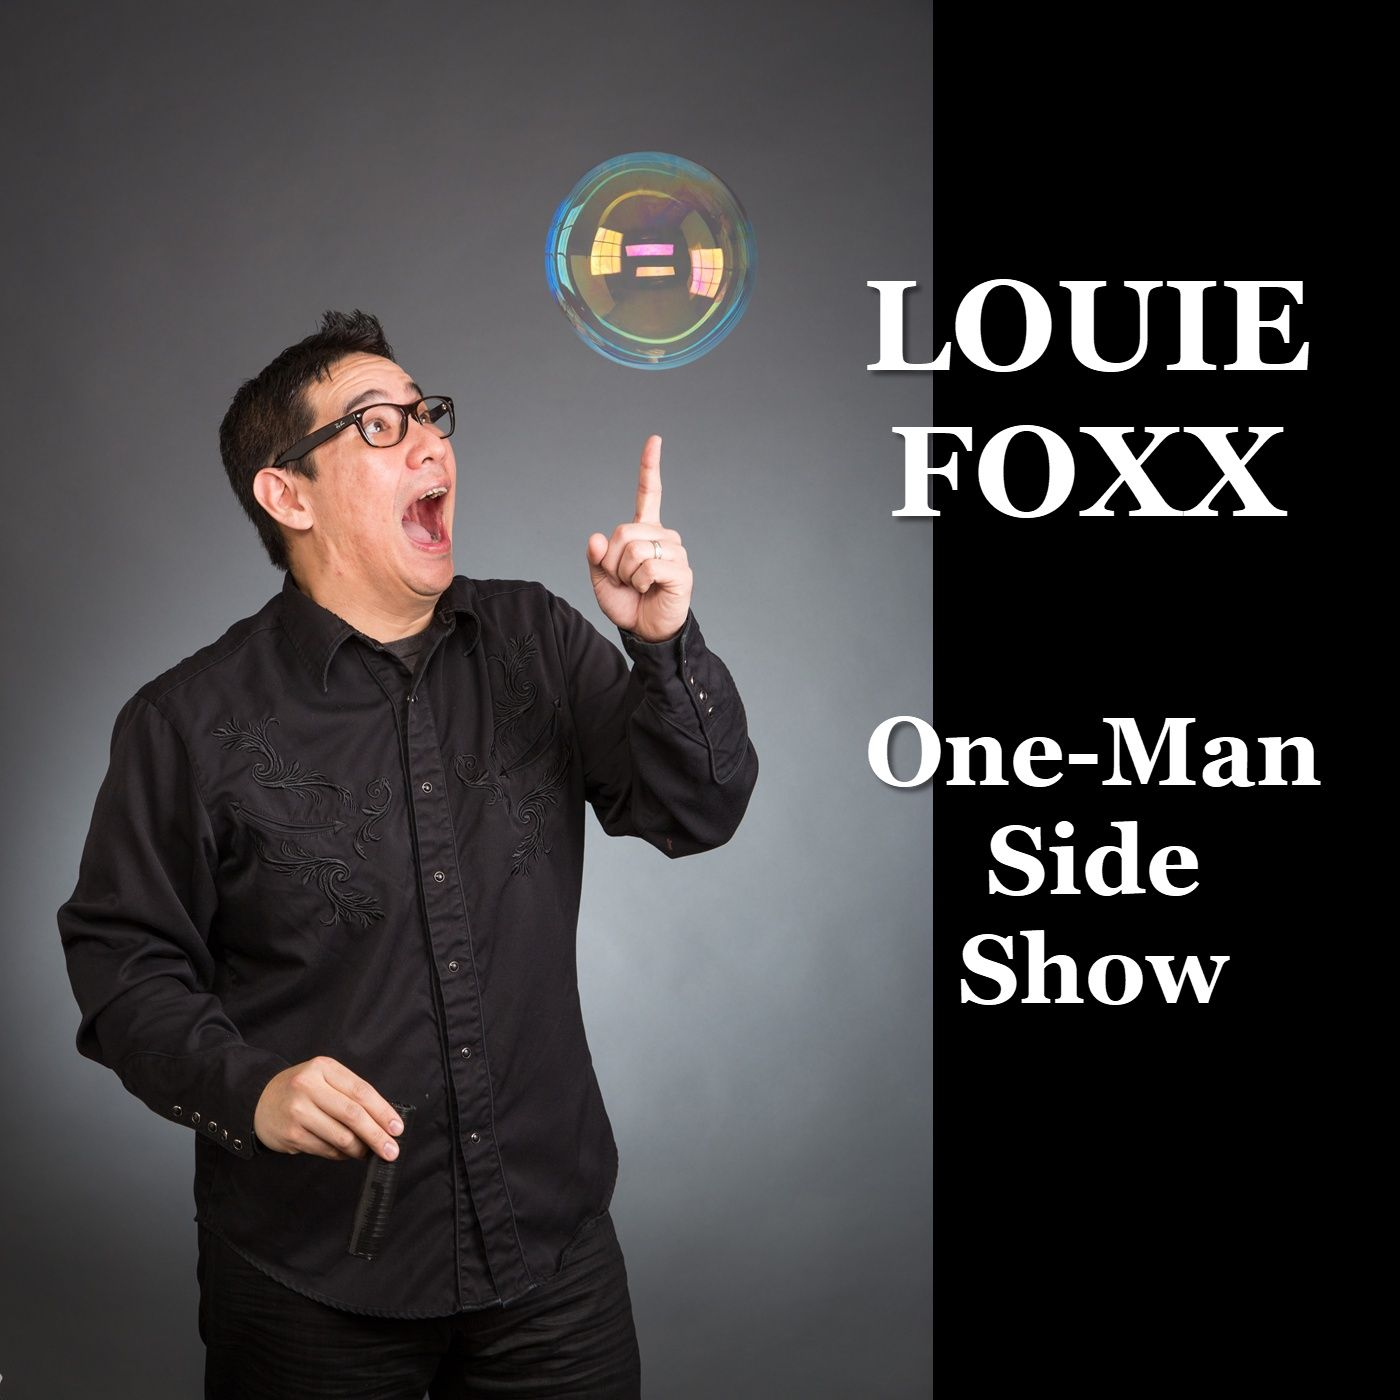 Louie Foxx, - Master Magician presented by Countyfairgrounds